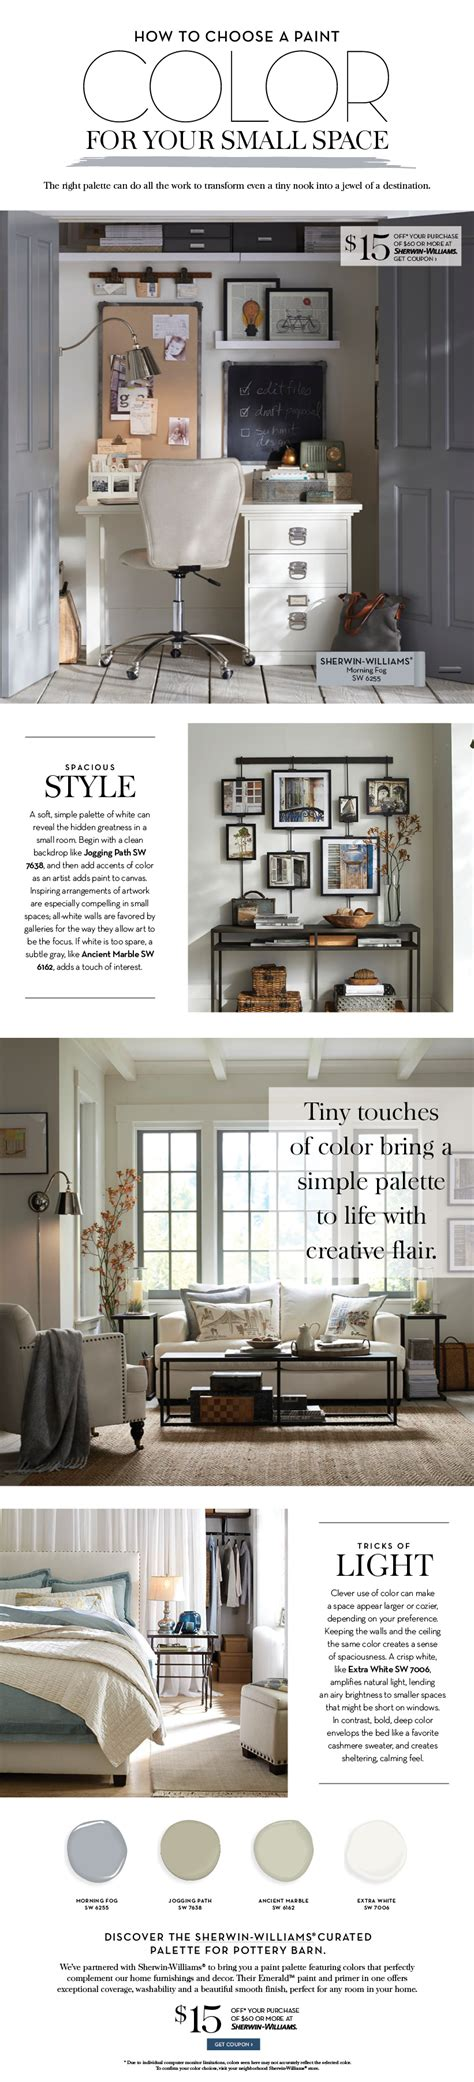 pottery barn small spaces choose a paint color for your small space pottery barn